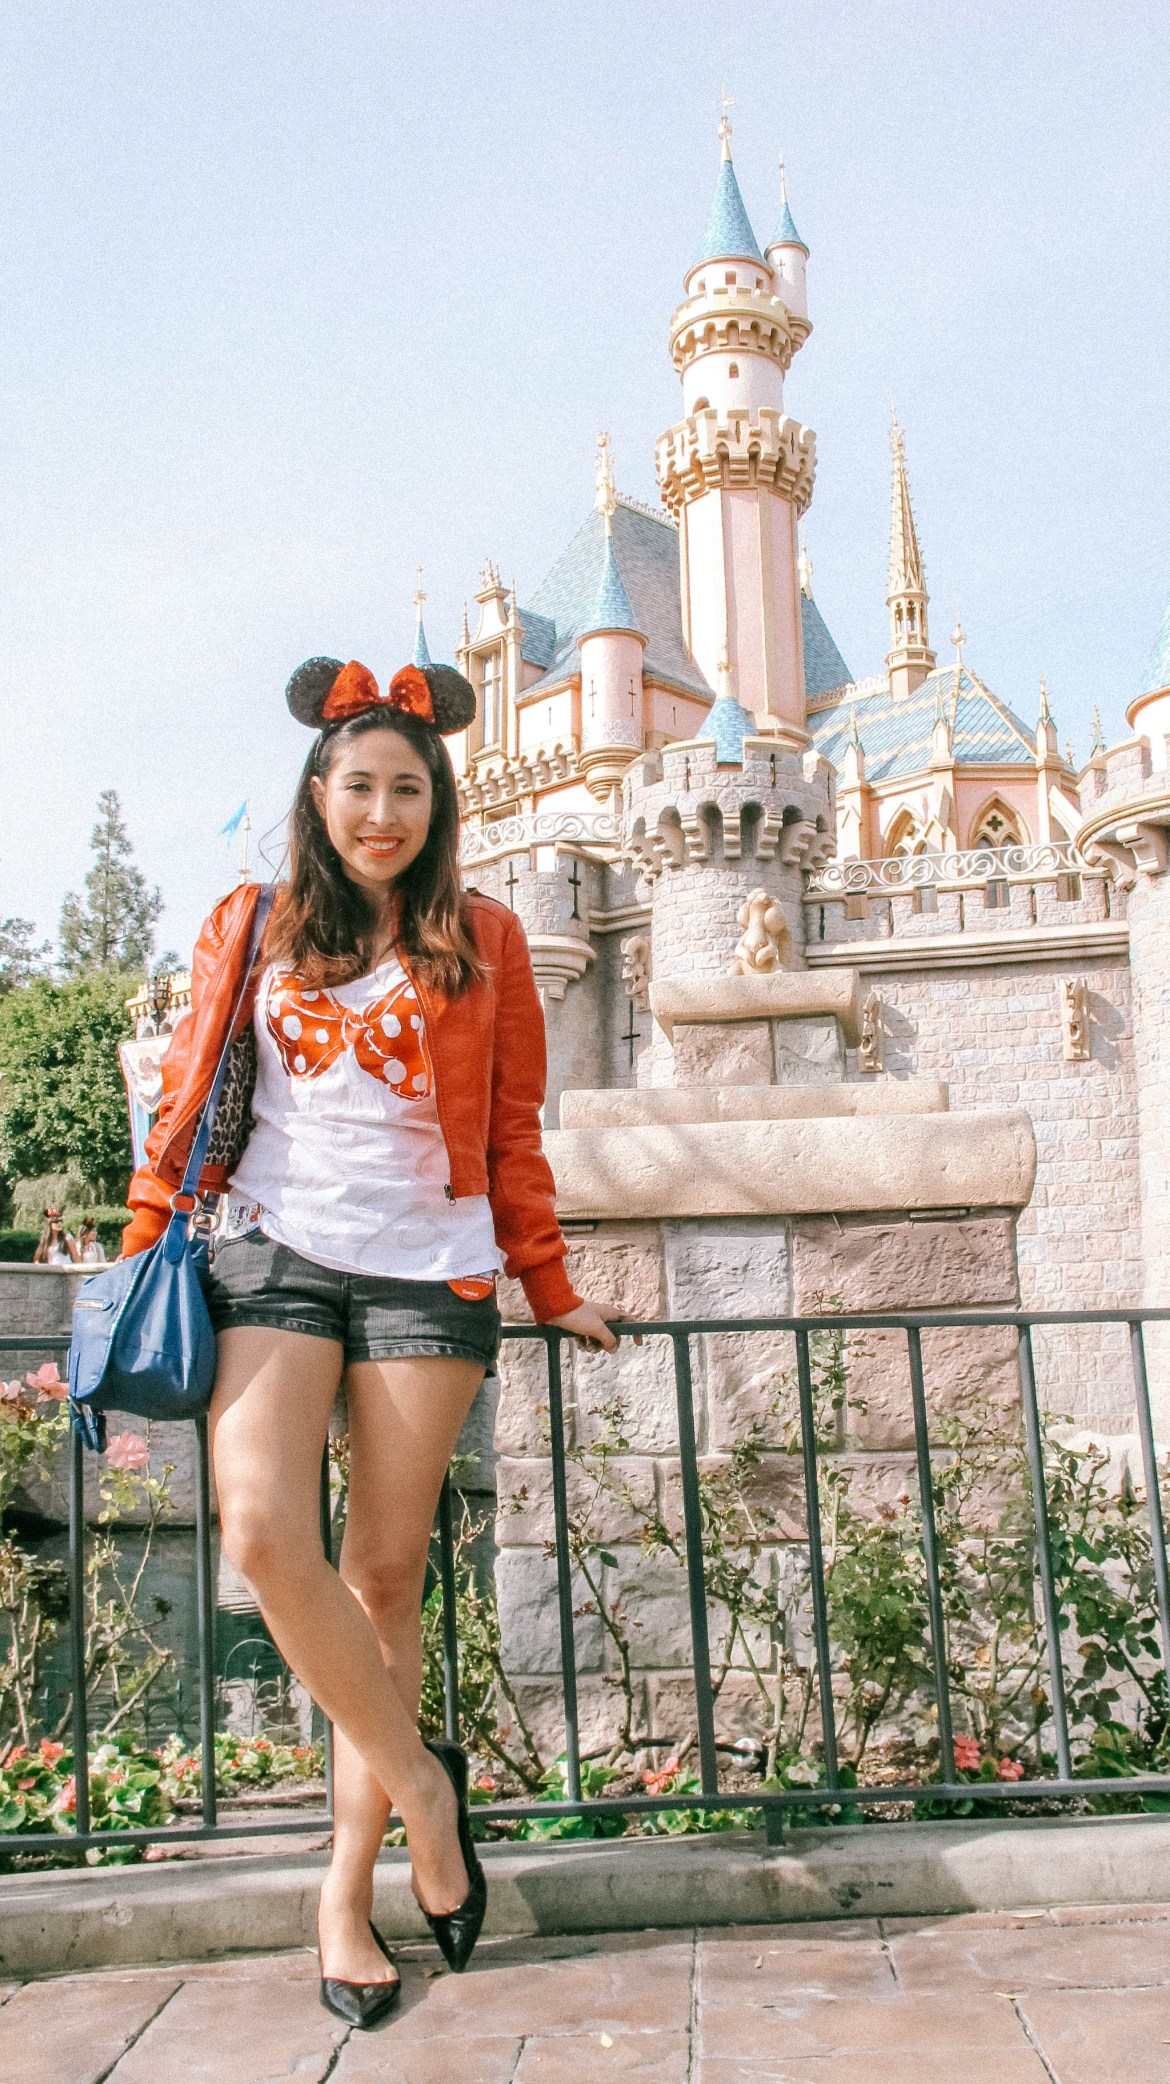 Woman in front of Disneyland Castle